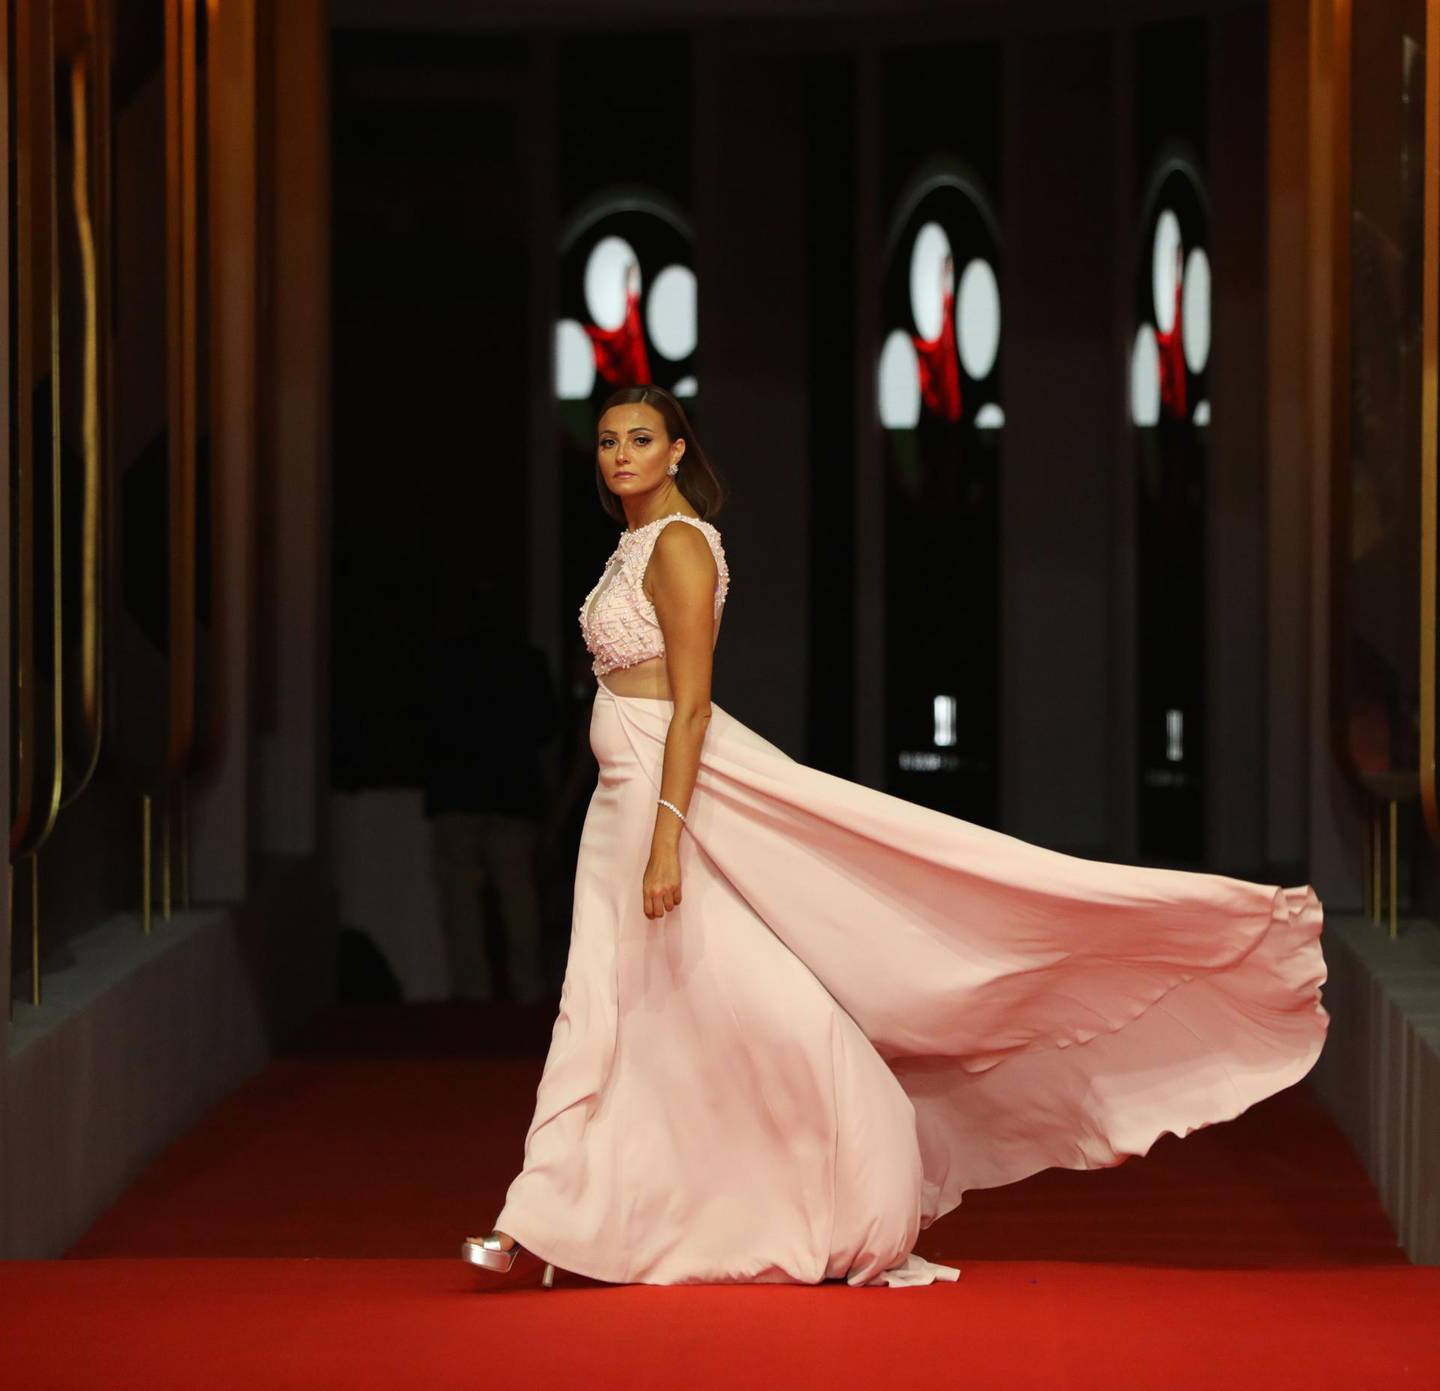 Egyptian actress Bushra Roza poses on the red carpet during the third edition of the Gouna Film Festival (GFF), in the Egyptian Red Sea resort of el-Gouna on September 20, 2019.  - RESTRICTED TO EDITORIAL USE  / AFP / El Gouna Film Festival / PATRICK BAZ / RESTRICTED TO EDITORIAL USE